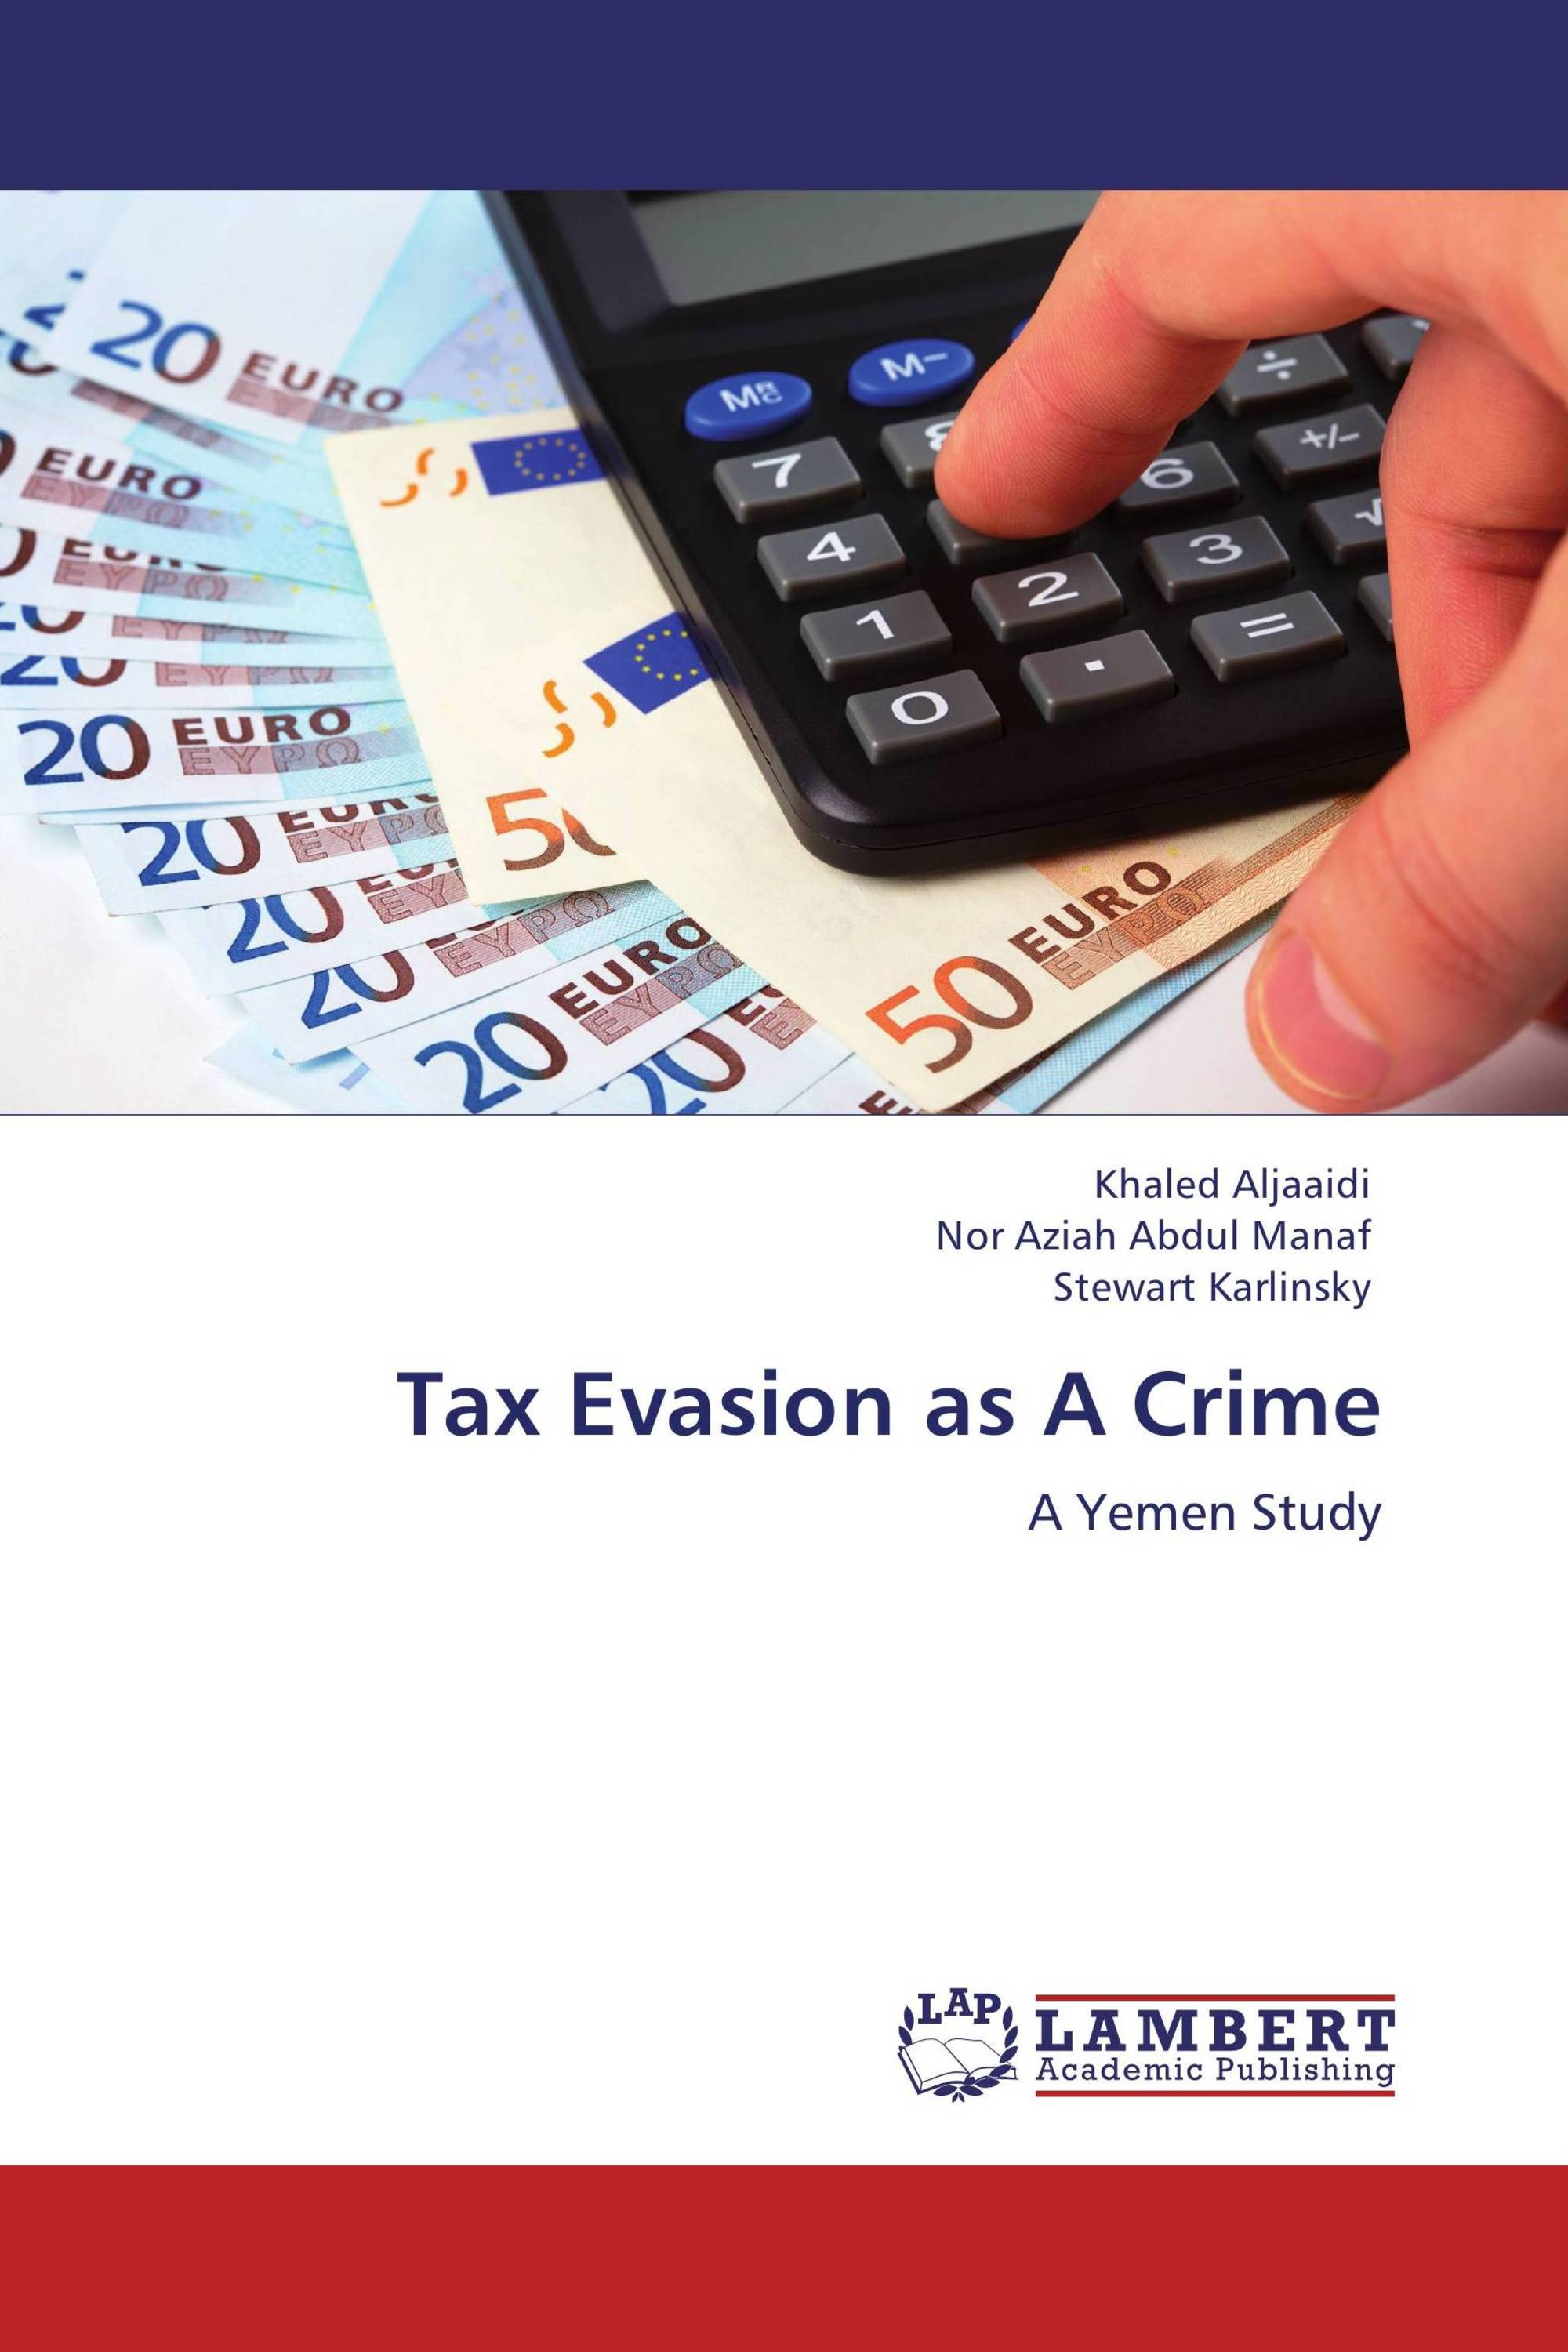 thesis on tax evasion